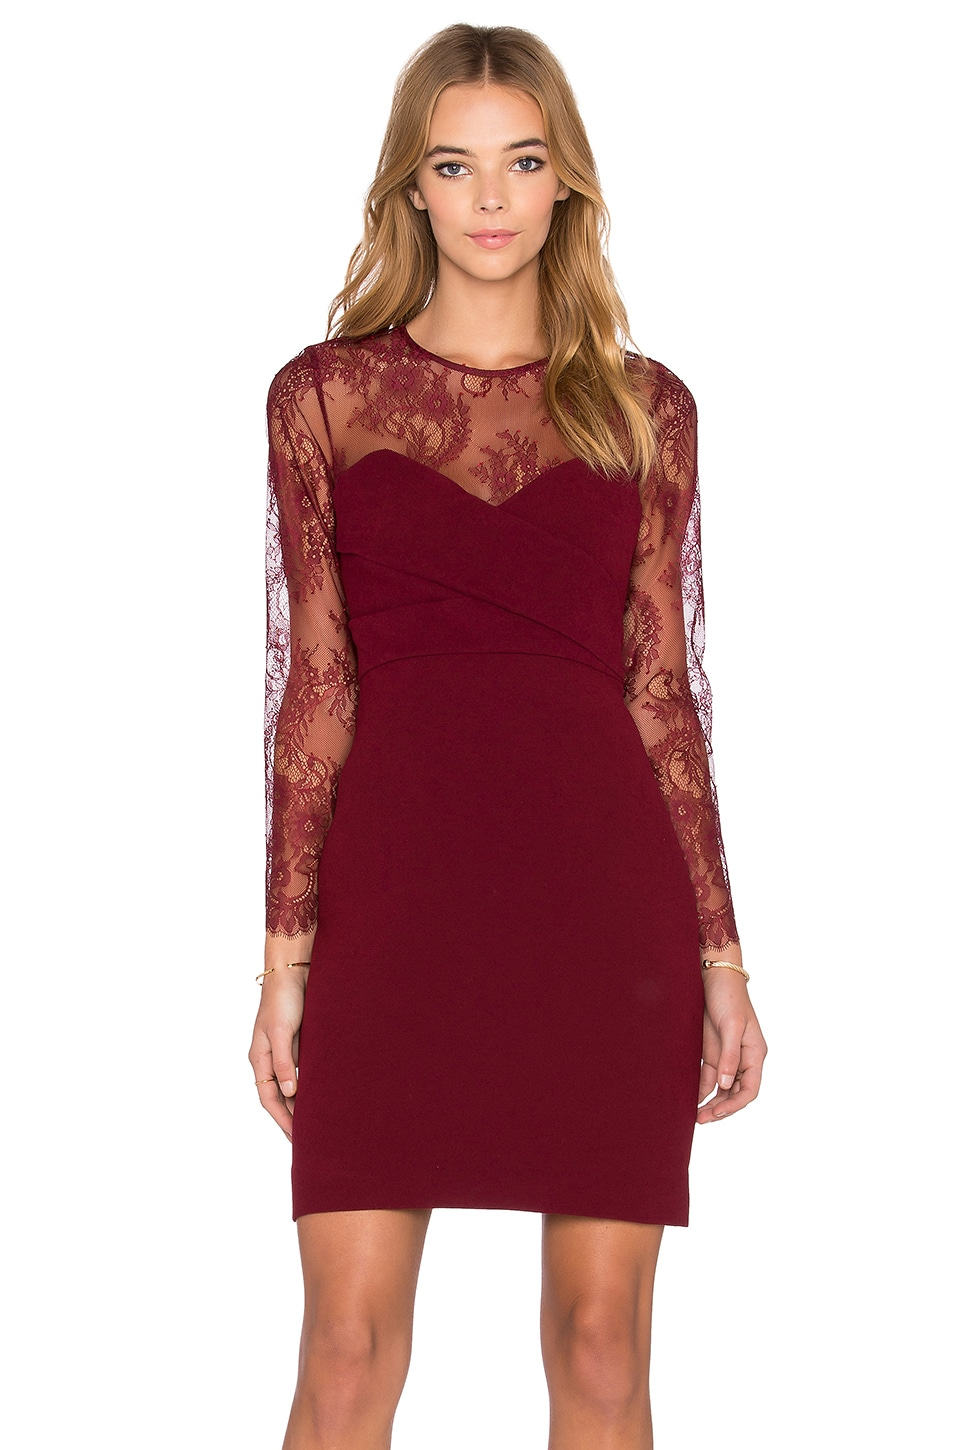 The Kooples Crepe & Lace Dress in Red